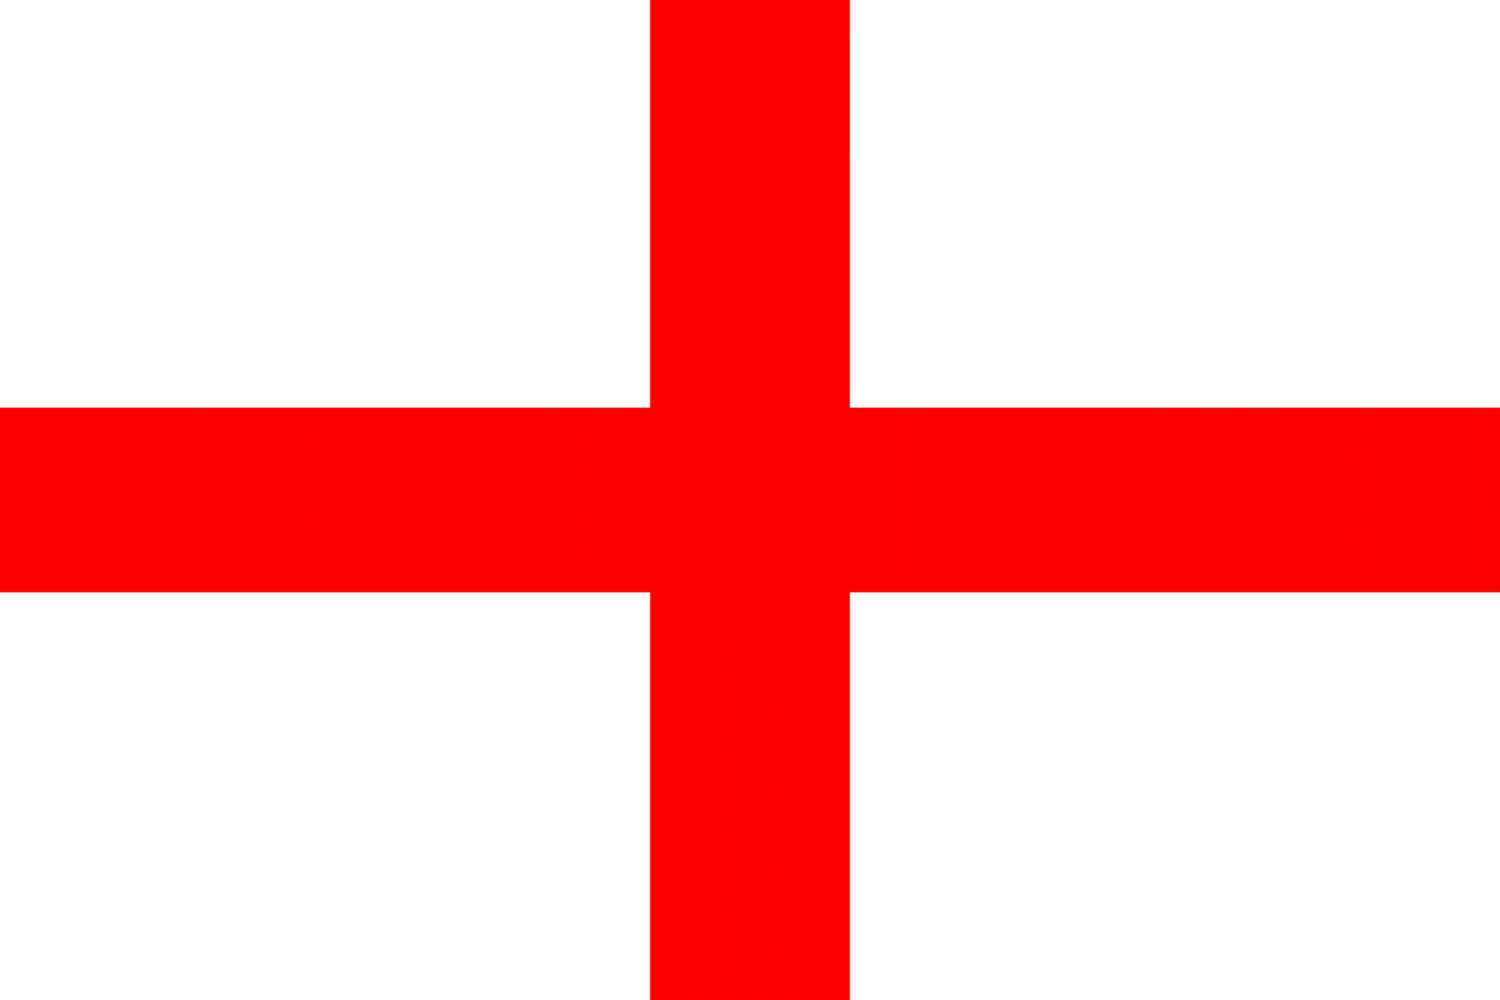 St George, national, England, flag, sewn, printed, red, cross